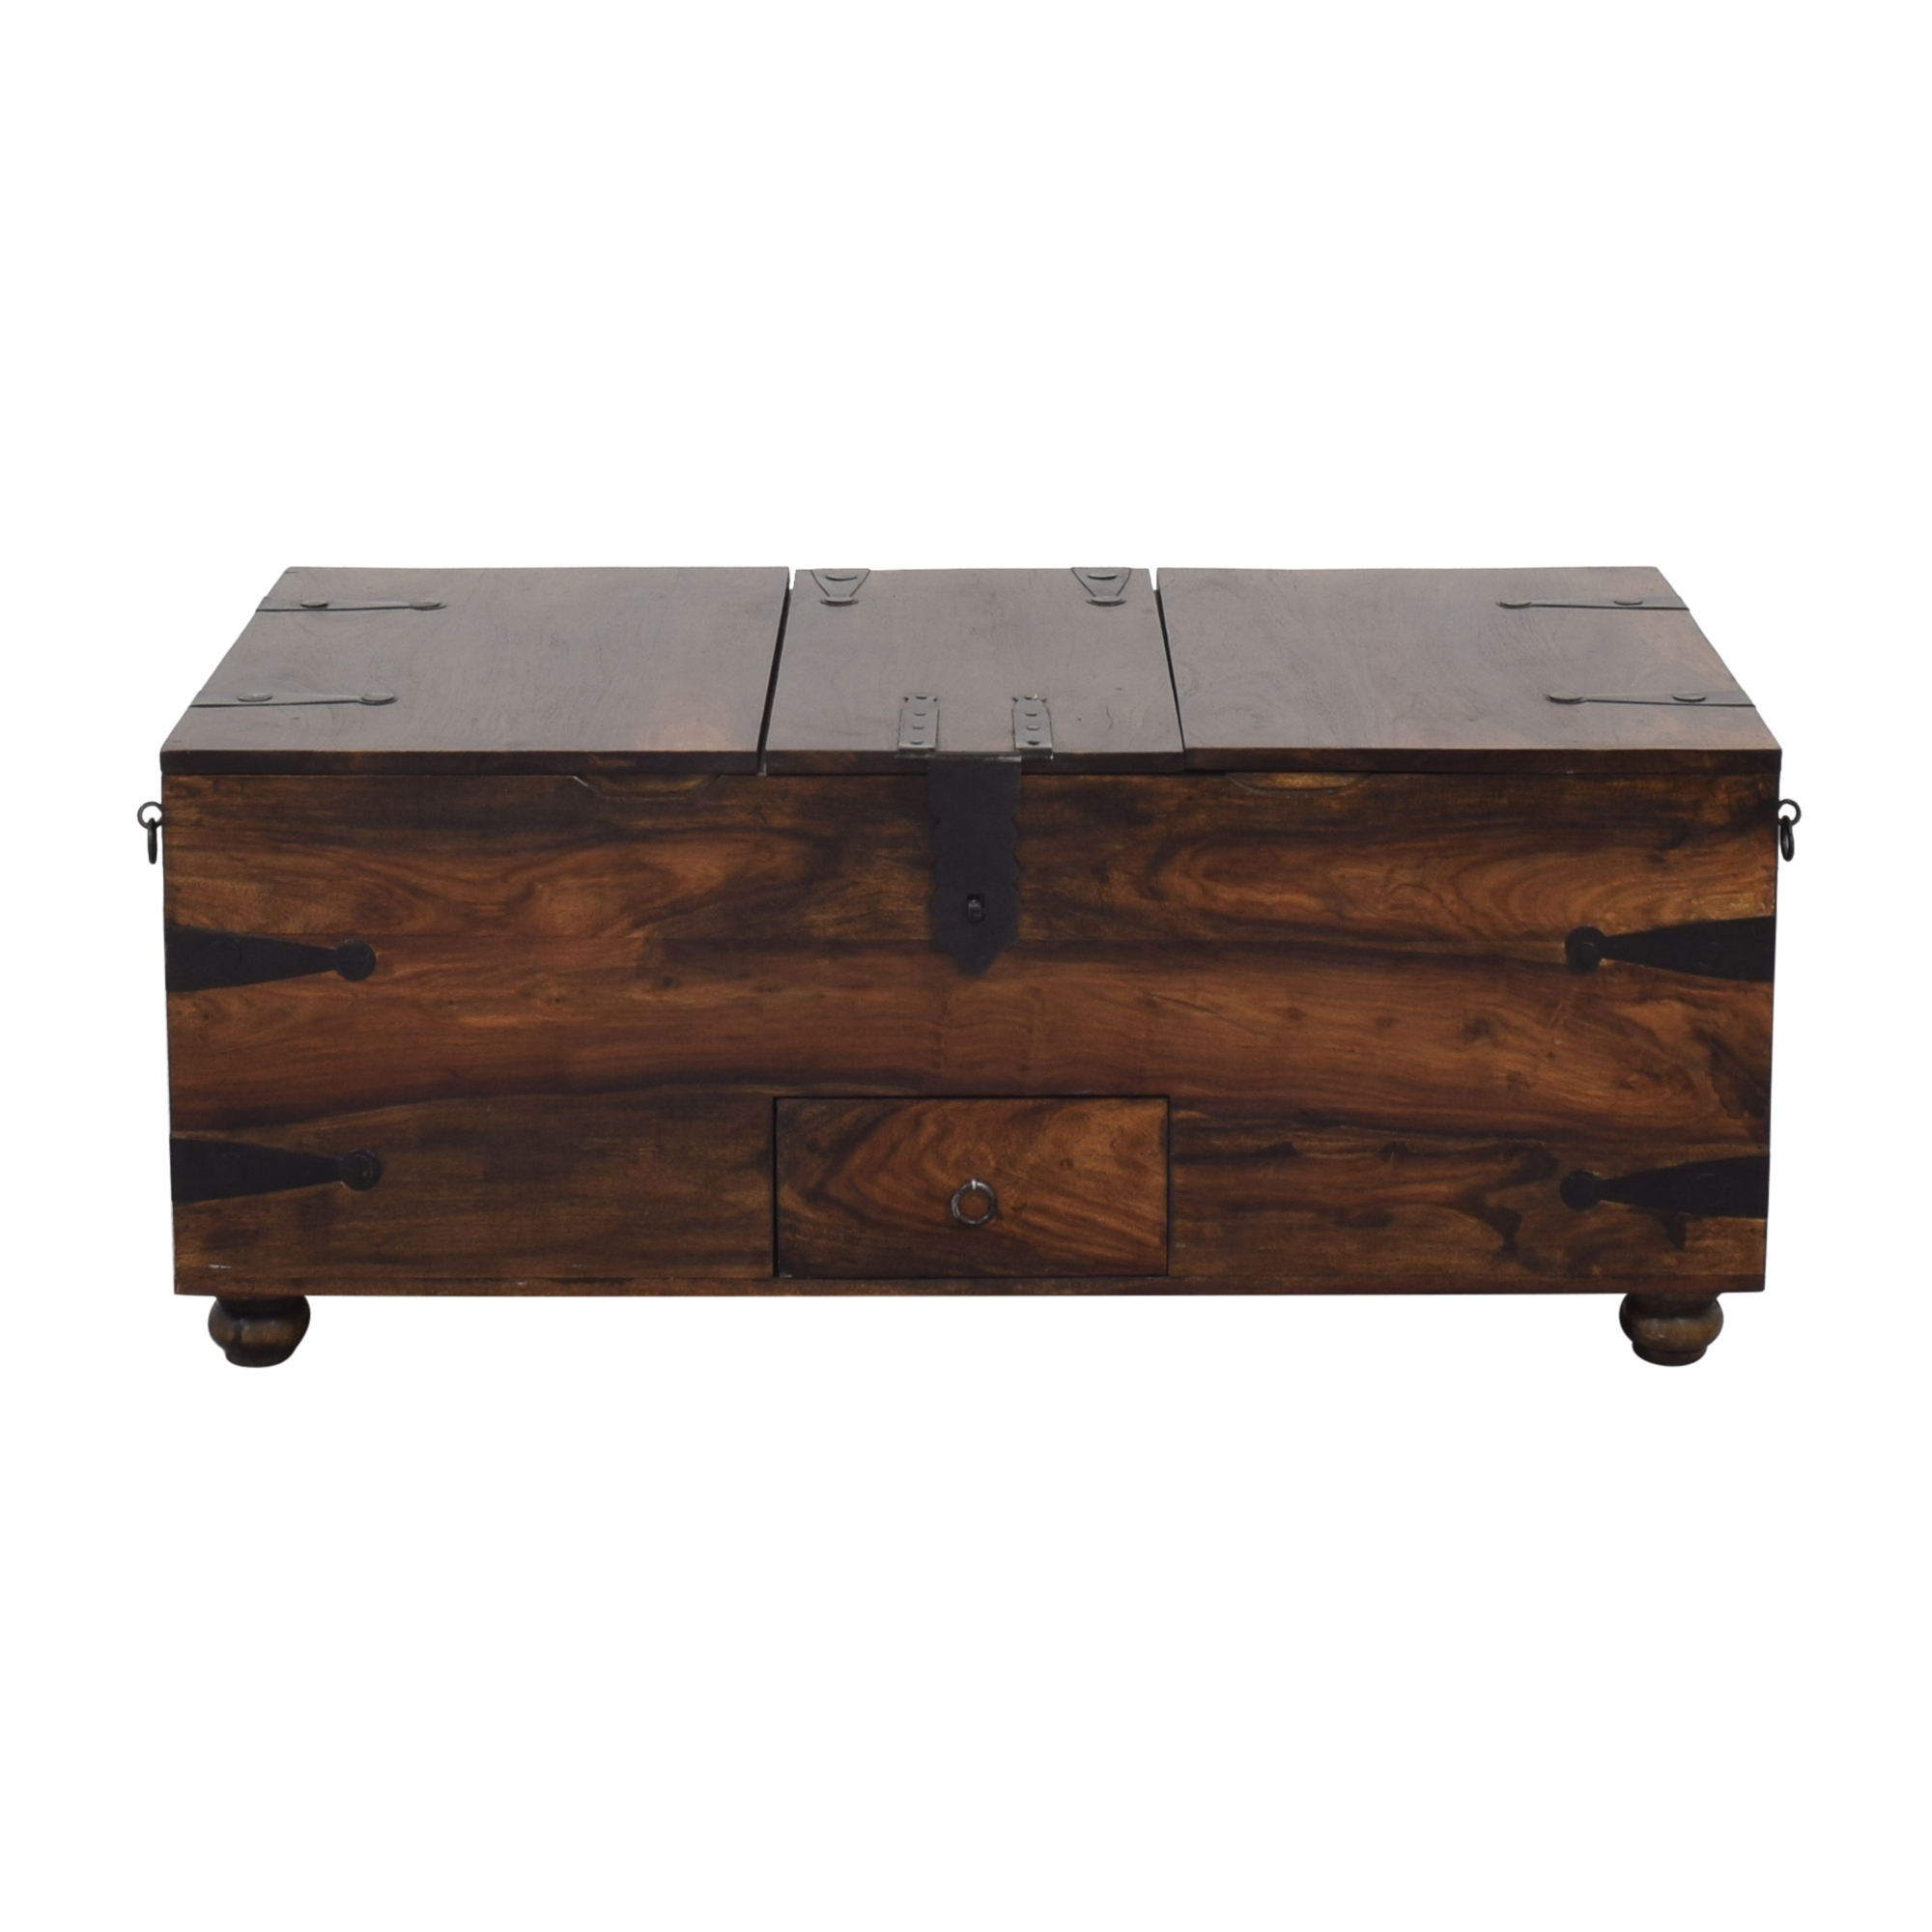 Crate & Barrel Crate & Barrel Taka Trunk and Coffee Table Trunks